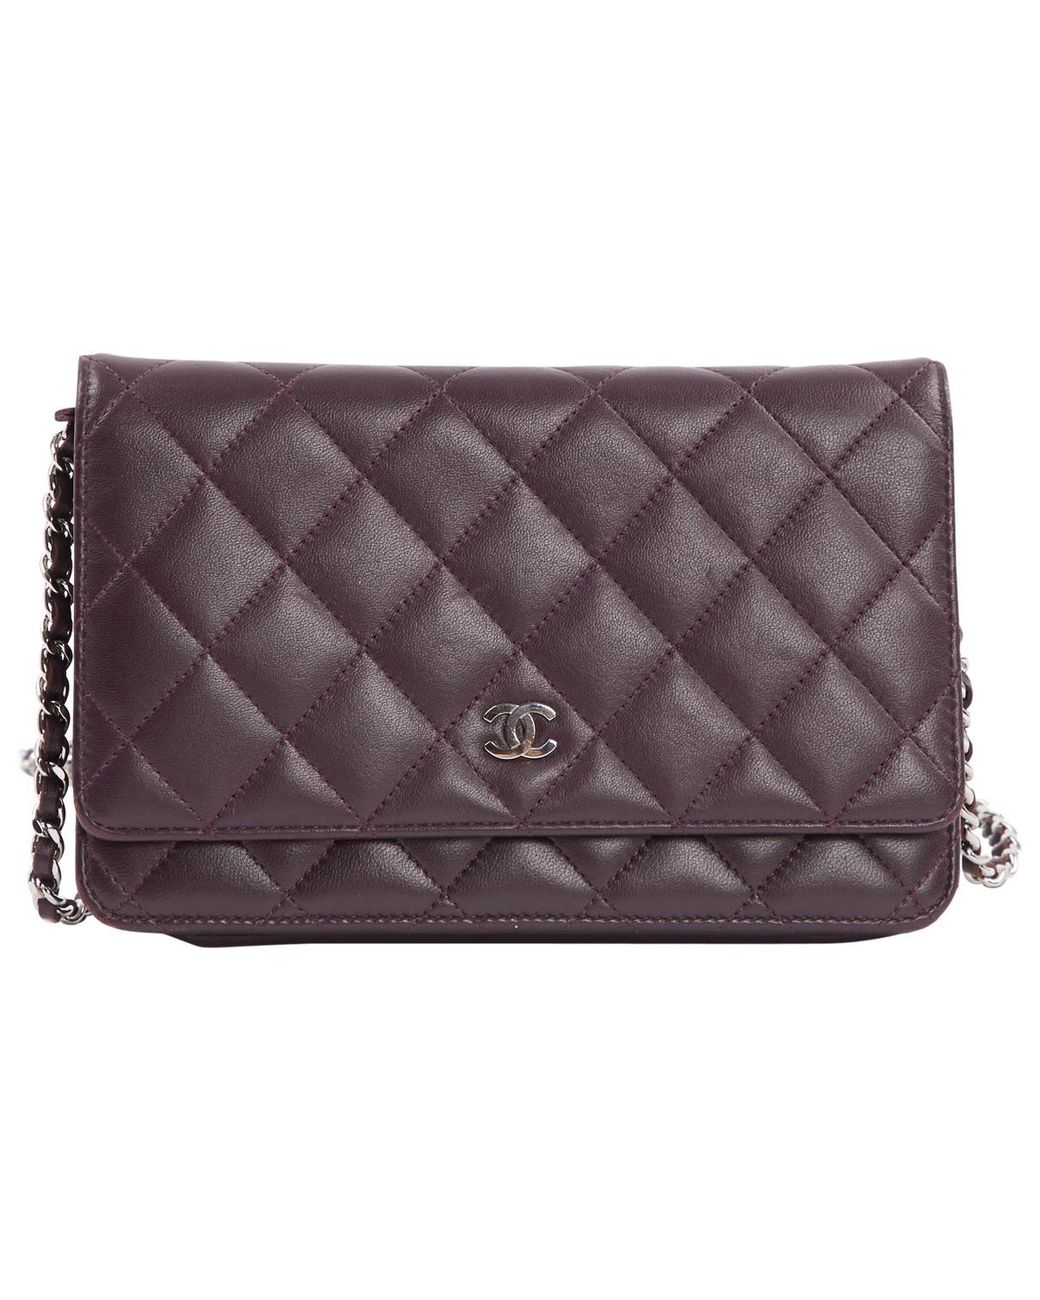 e9c999254bf0 Lyst - Chanel Wallet On Chain Purple Leather Handbag in Purple